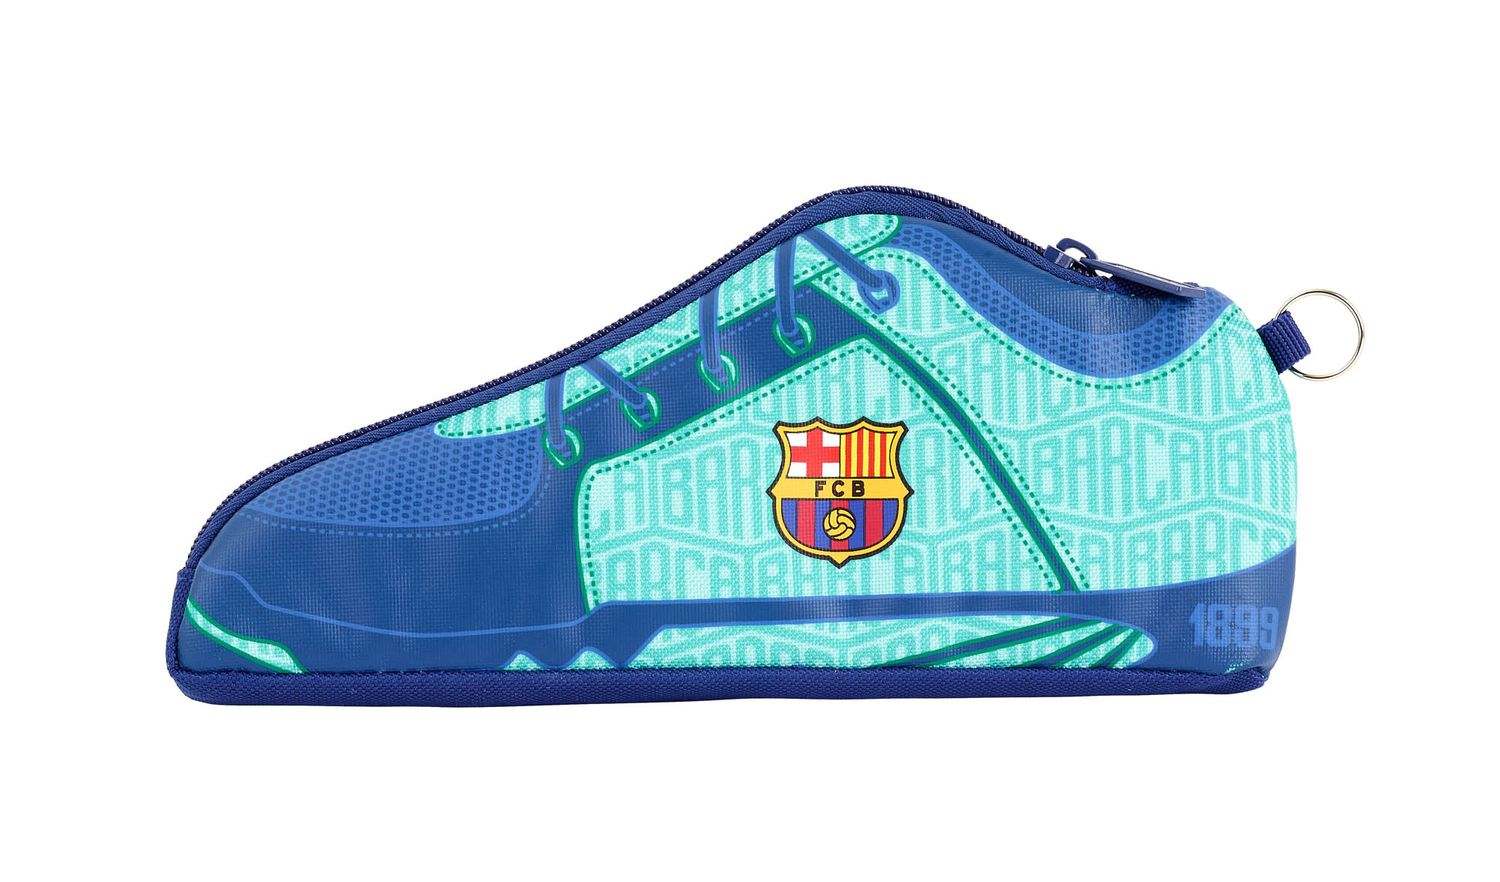 FC Barcelona 2020 2nd Kit Shoe Shaped Pencil Case – image 2